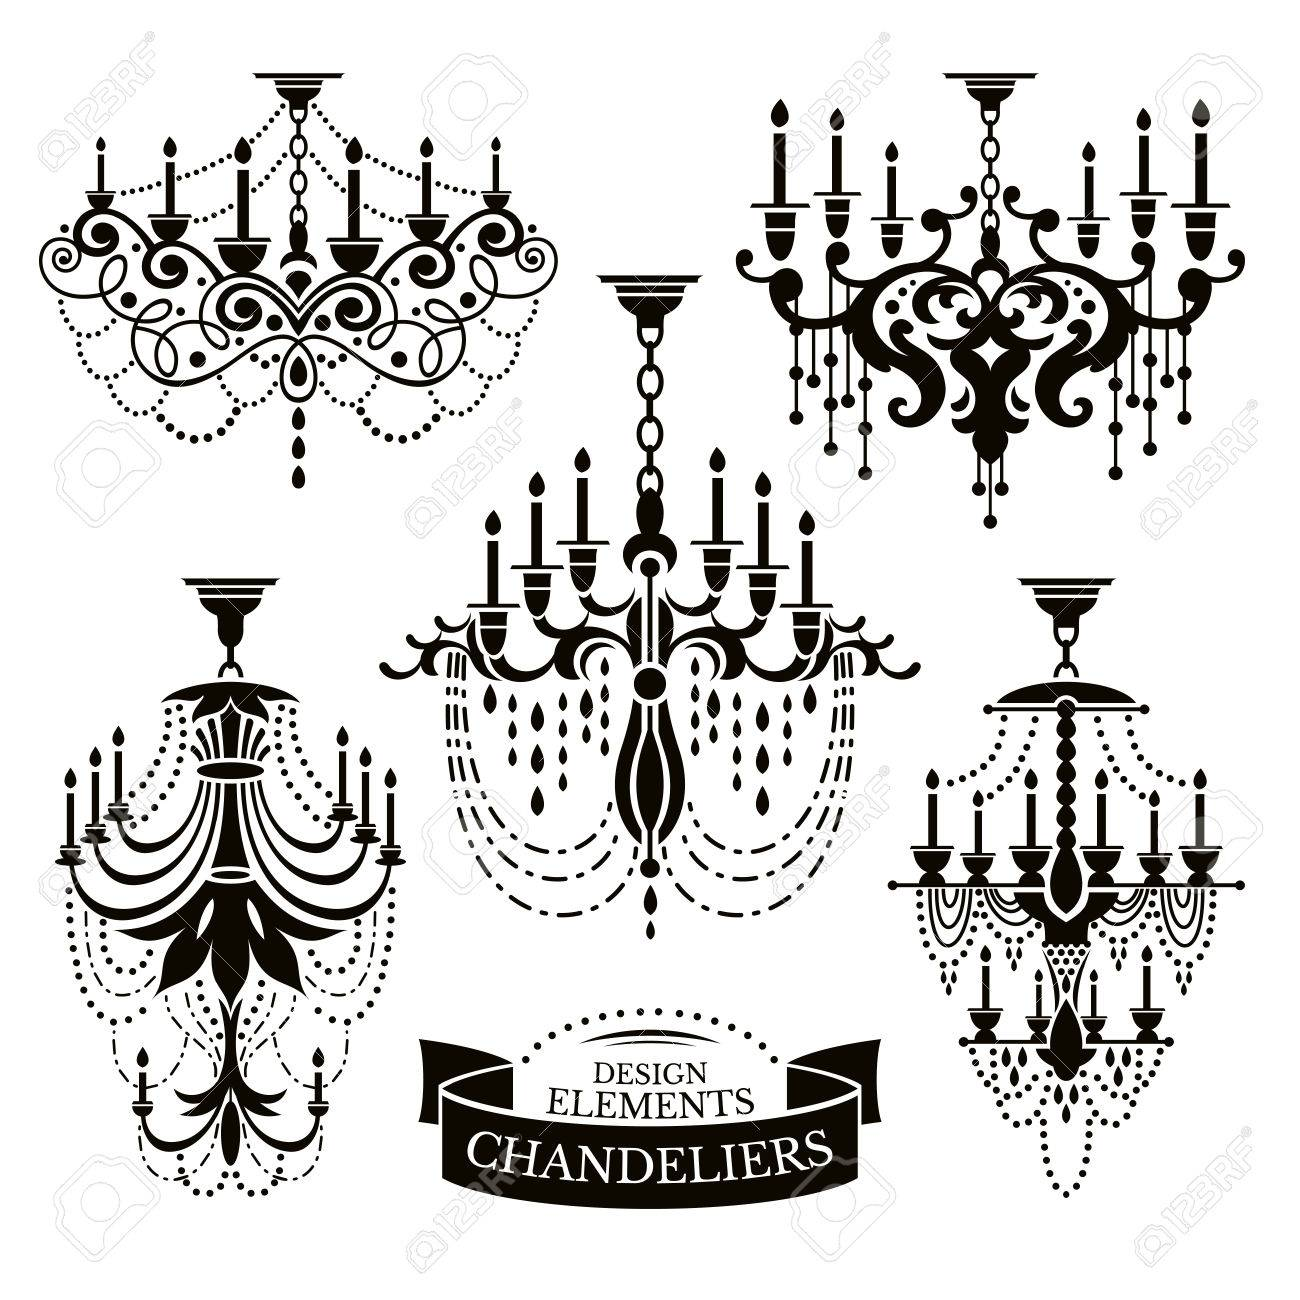 Set of chandelier silhouettes vector illustration - 36155128